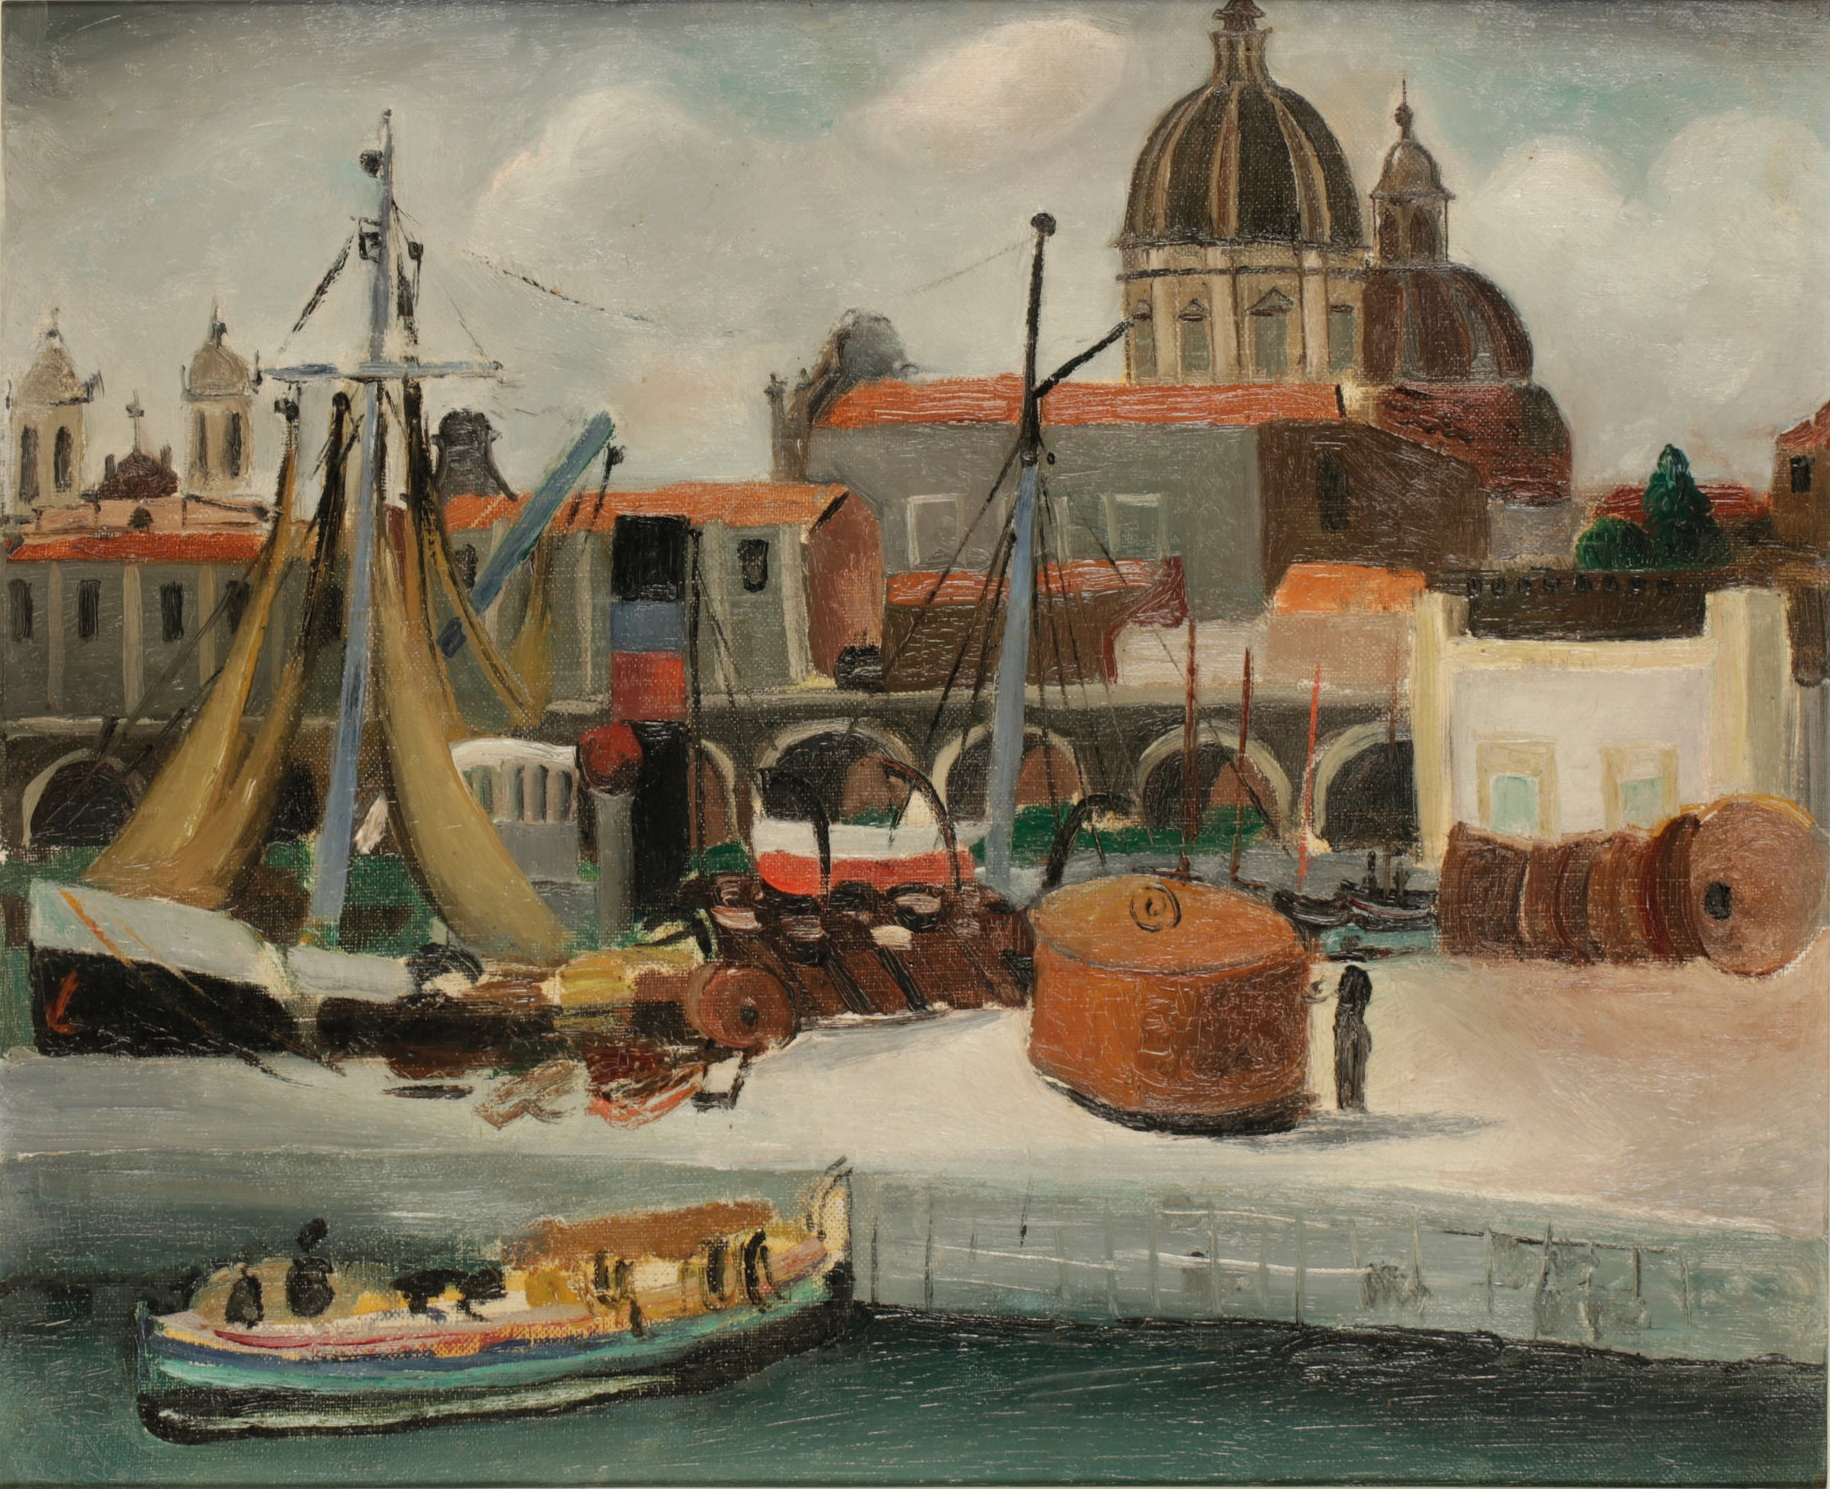 Christopher Wood (1901 - 1930) ,  On the Quay (Catania) , 1927, Oil on canvas, 37.5 x 45.75 cm